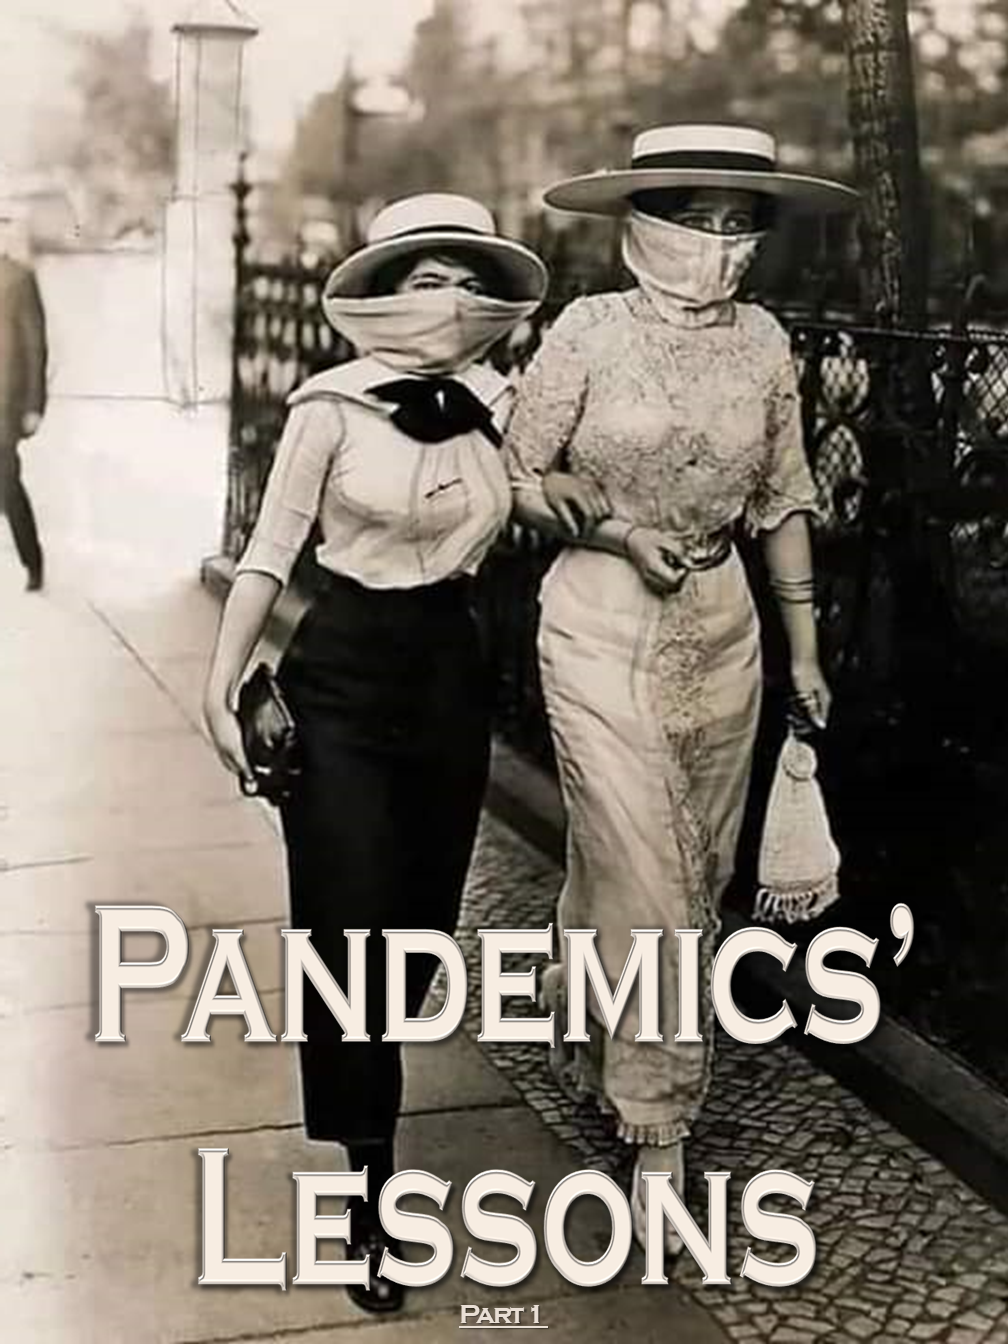 Pandemics' Lessons (Part 1)